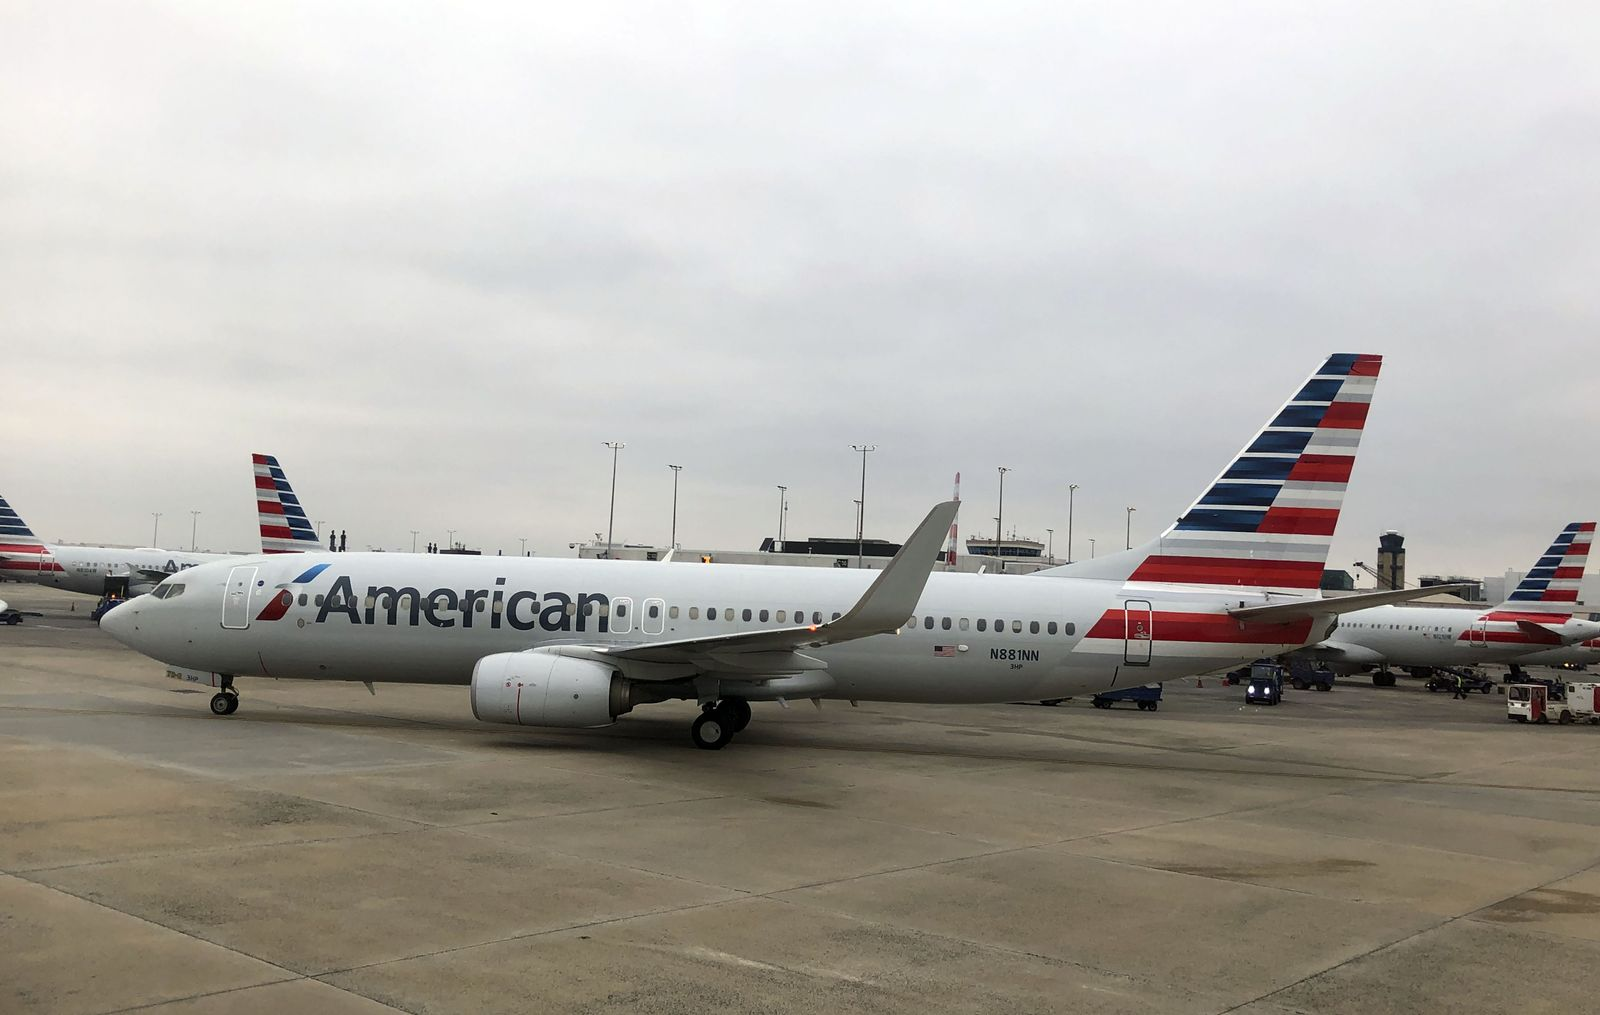 FILES-US-AVIATION-ACCIDENT-AMERICANAIRLINES